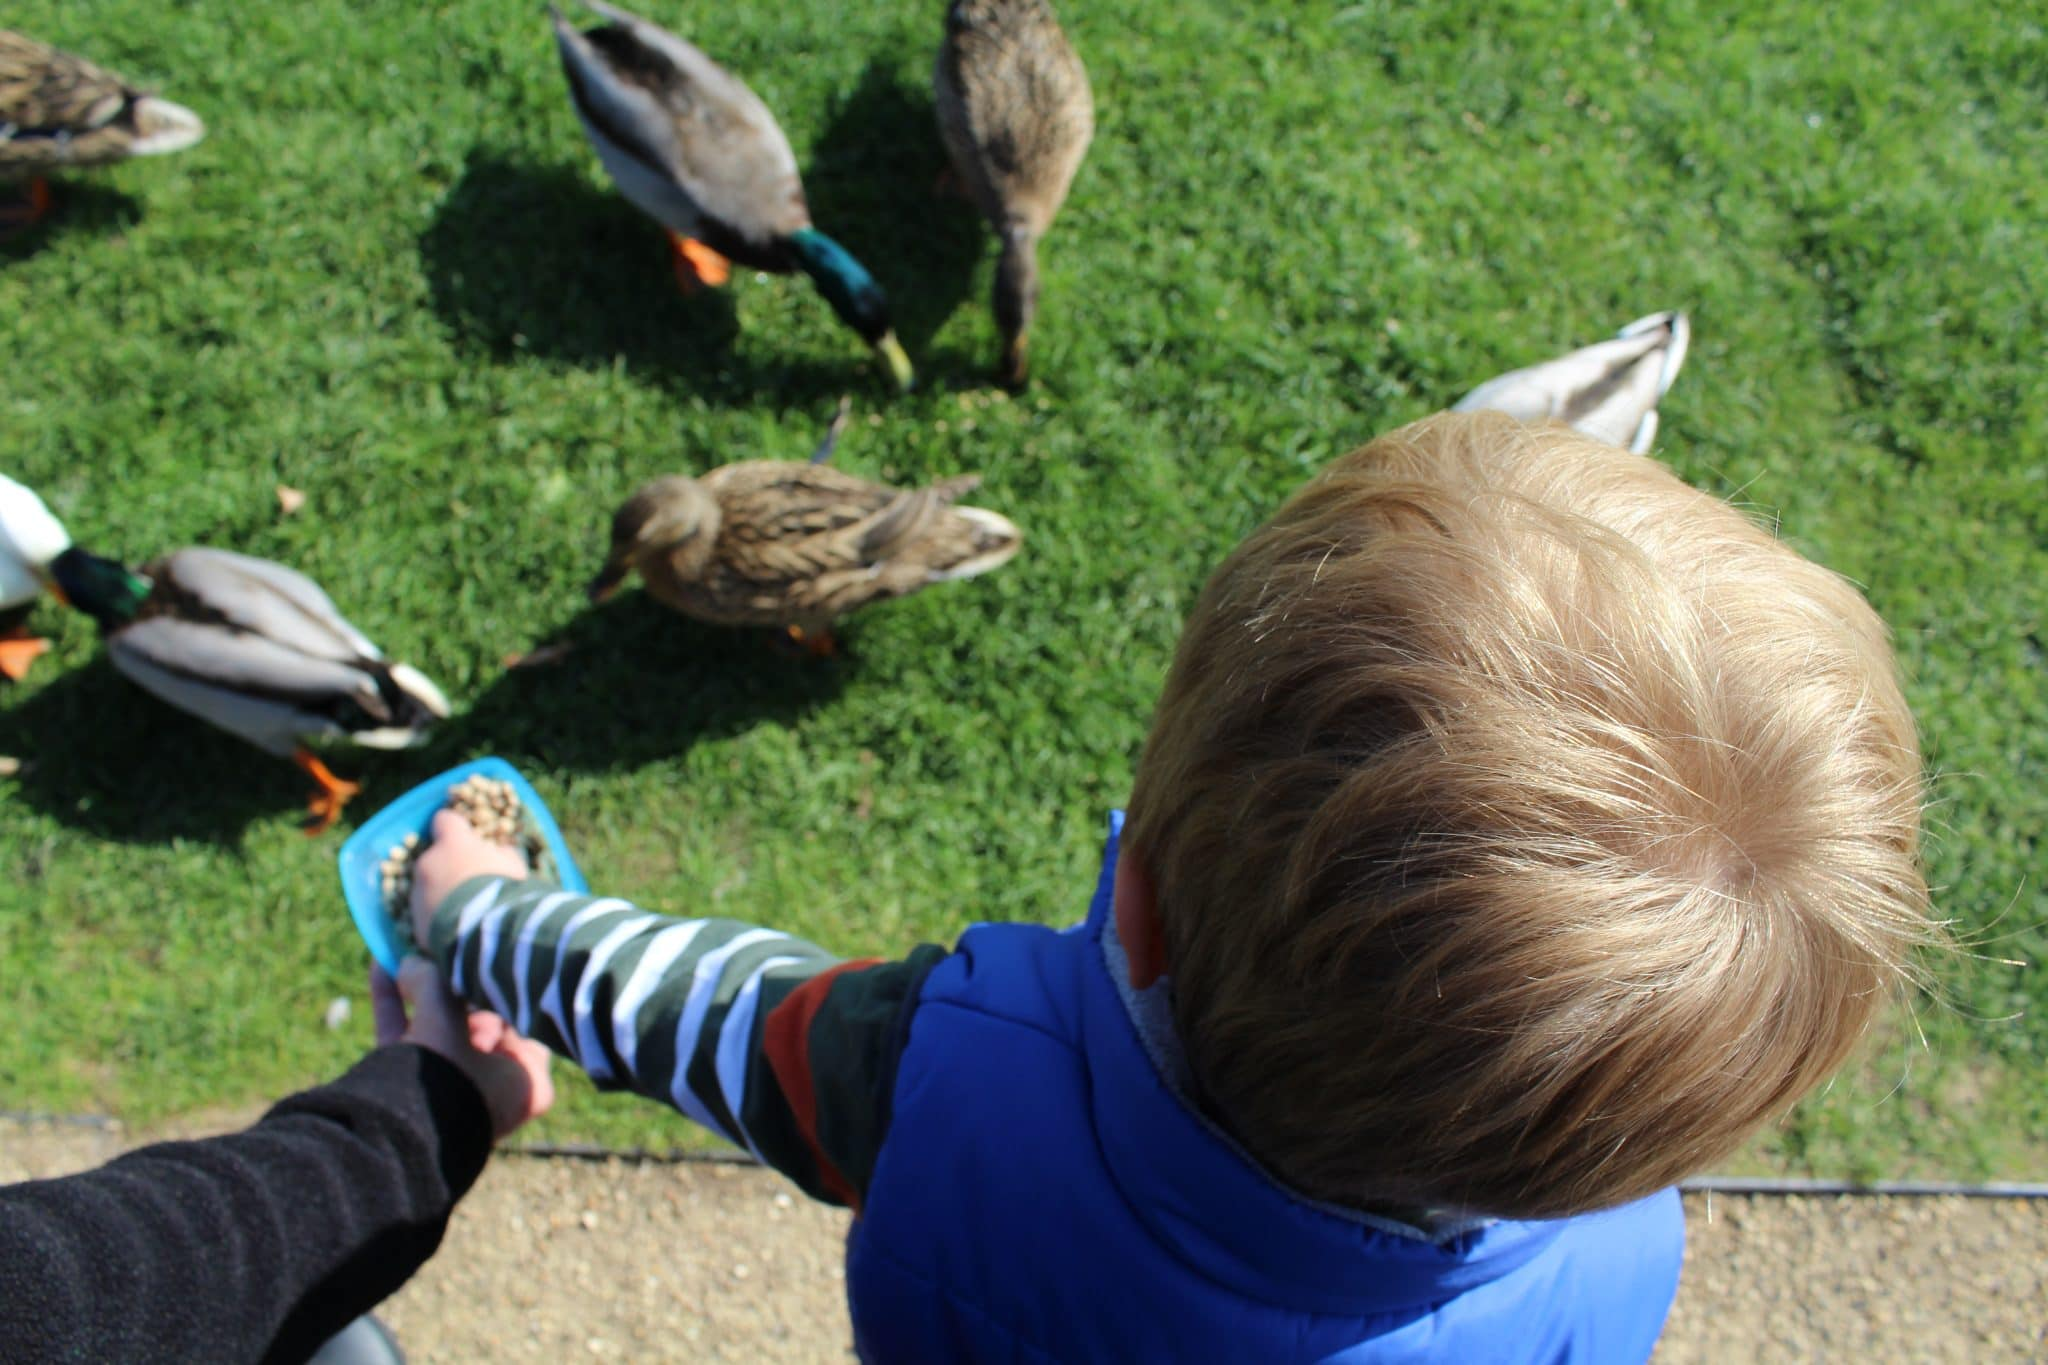 Feeding the ducks at the Festival Gardens